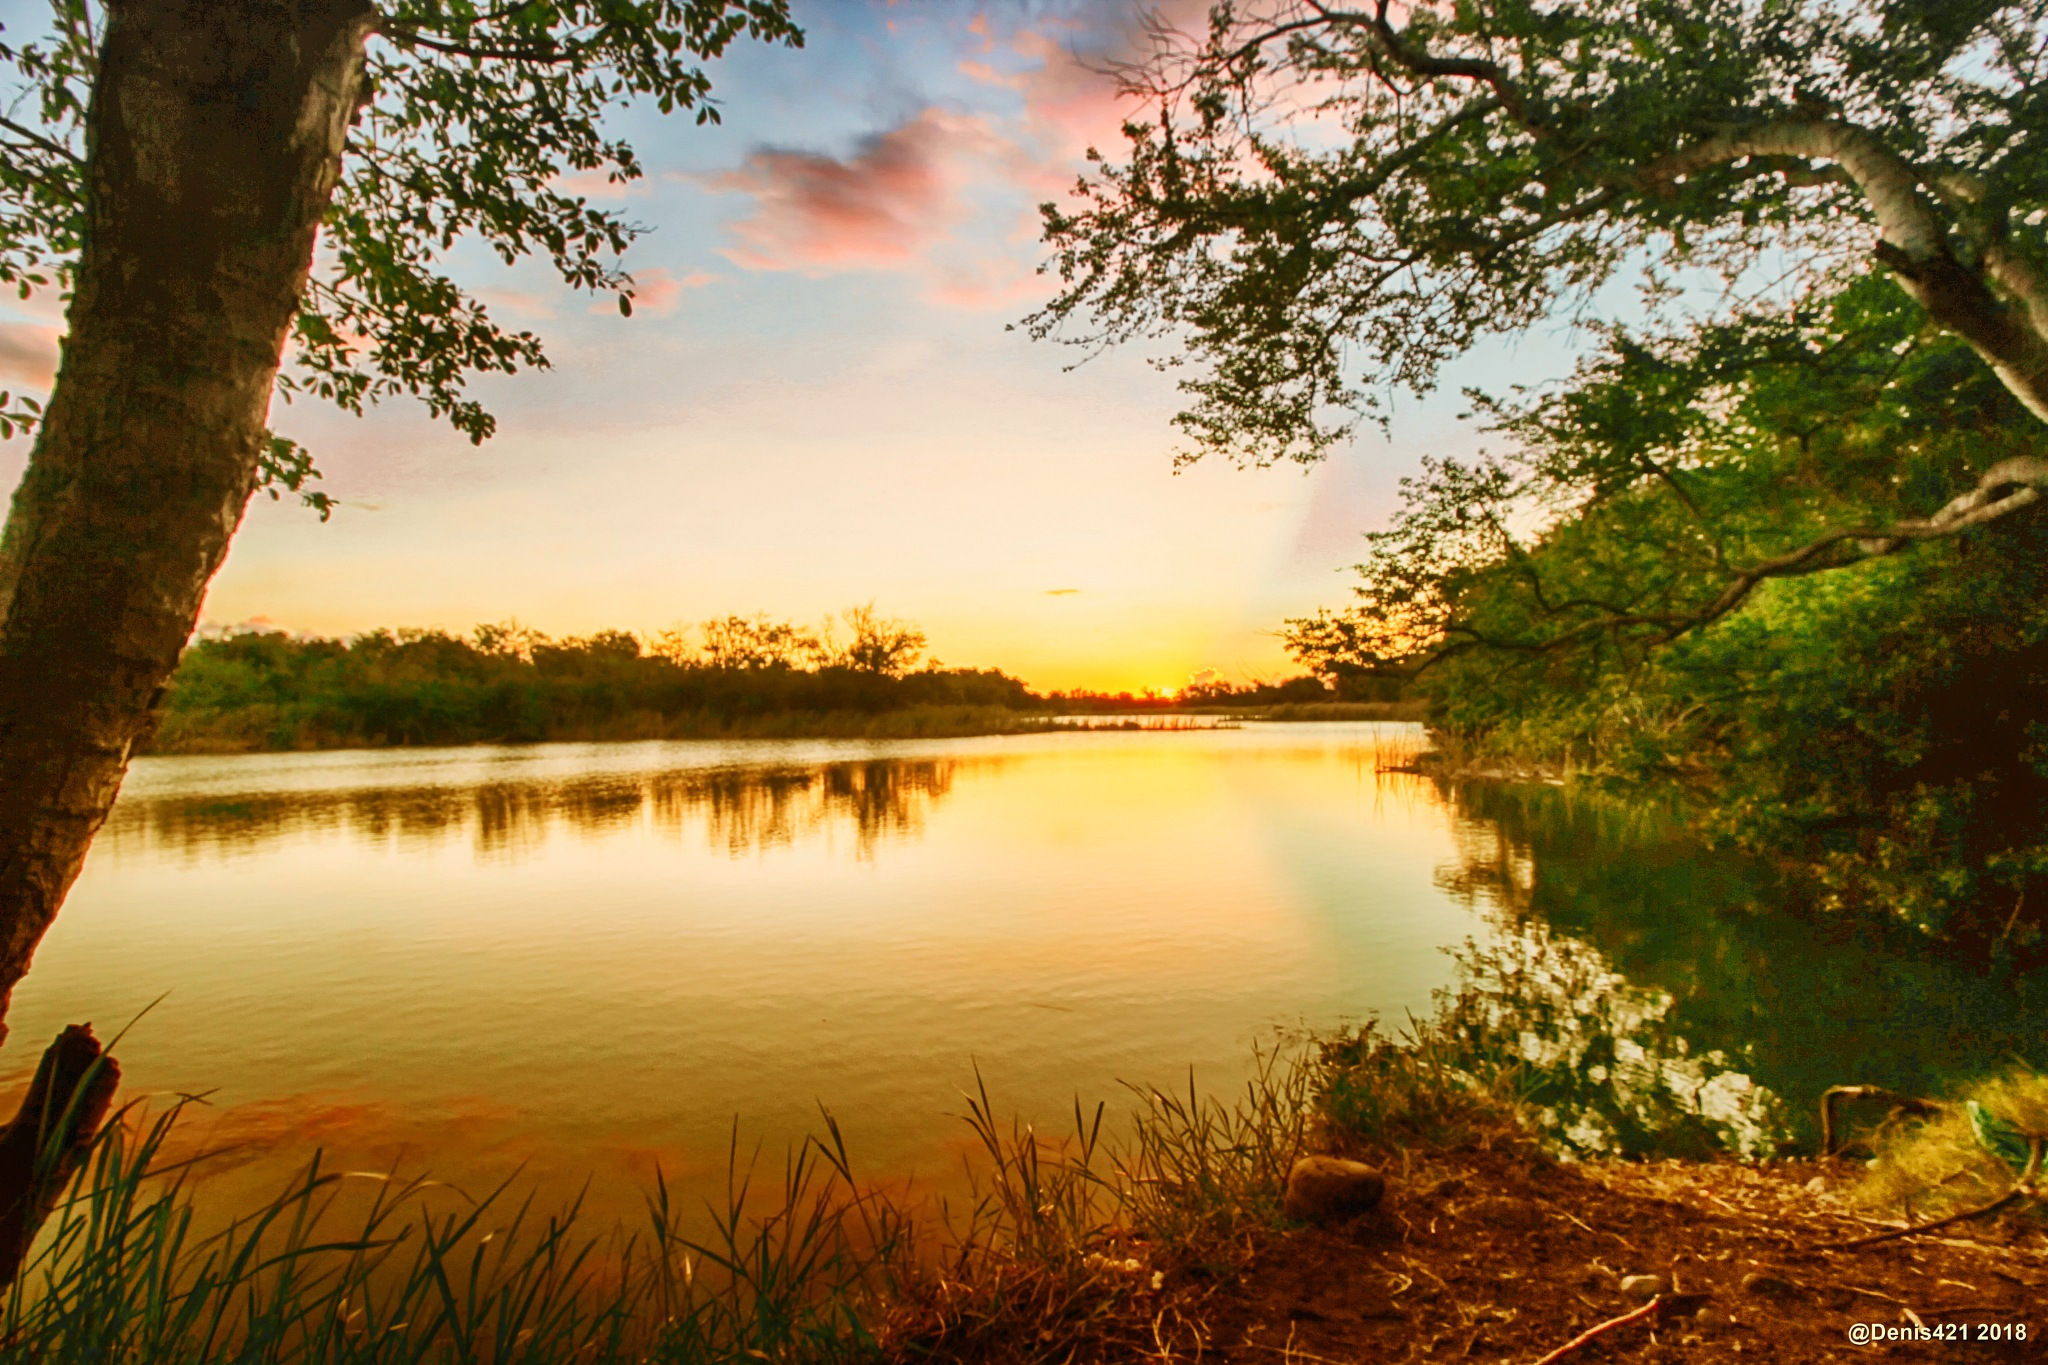 Sunset lighting at the pond by Denis Payet